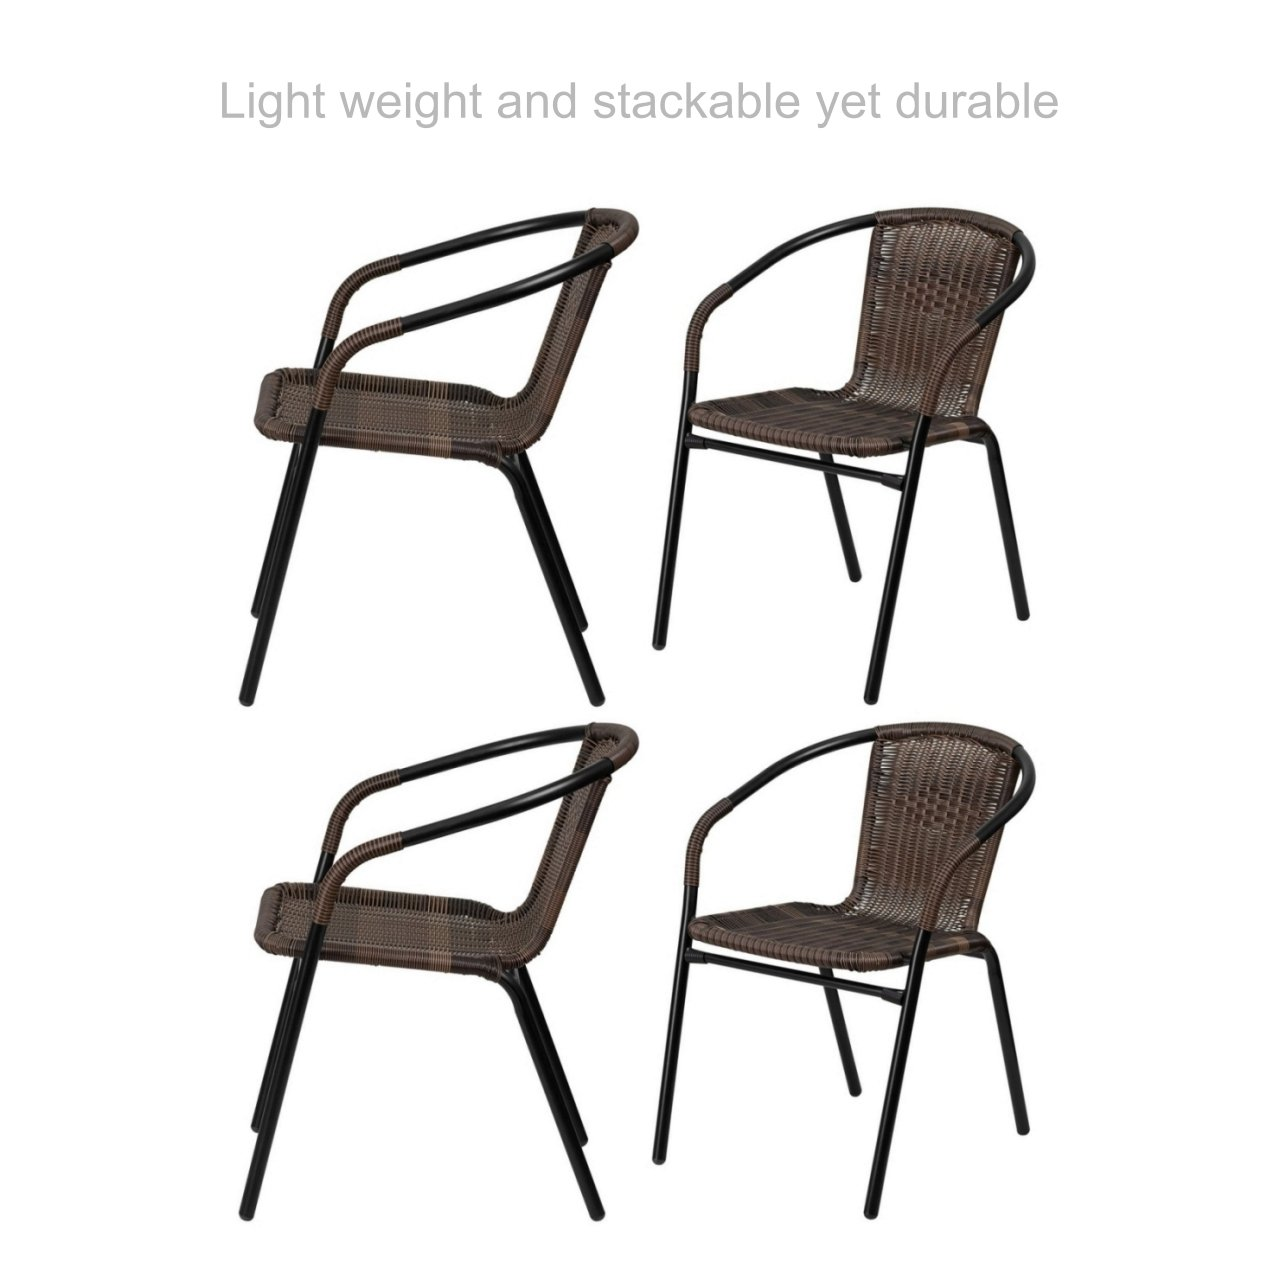 Koonlert@Shop Outdoo Indoor Stackable Rattan Chair Sturdy Steel Frame Durable Lightweight Comfortable Breathable Waterproof Material Home Garden Furniture - Set 0f 4 Brown #1783brw